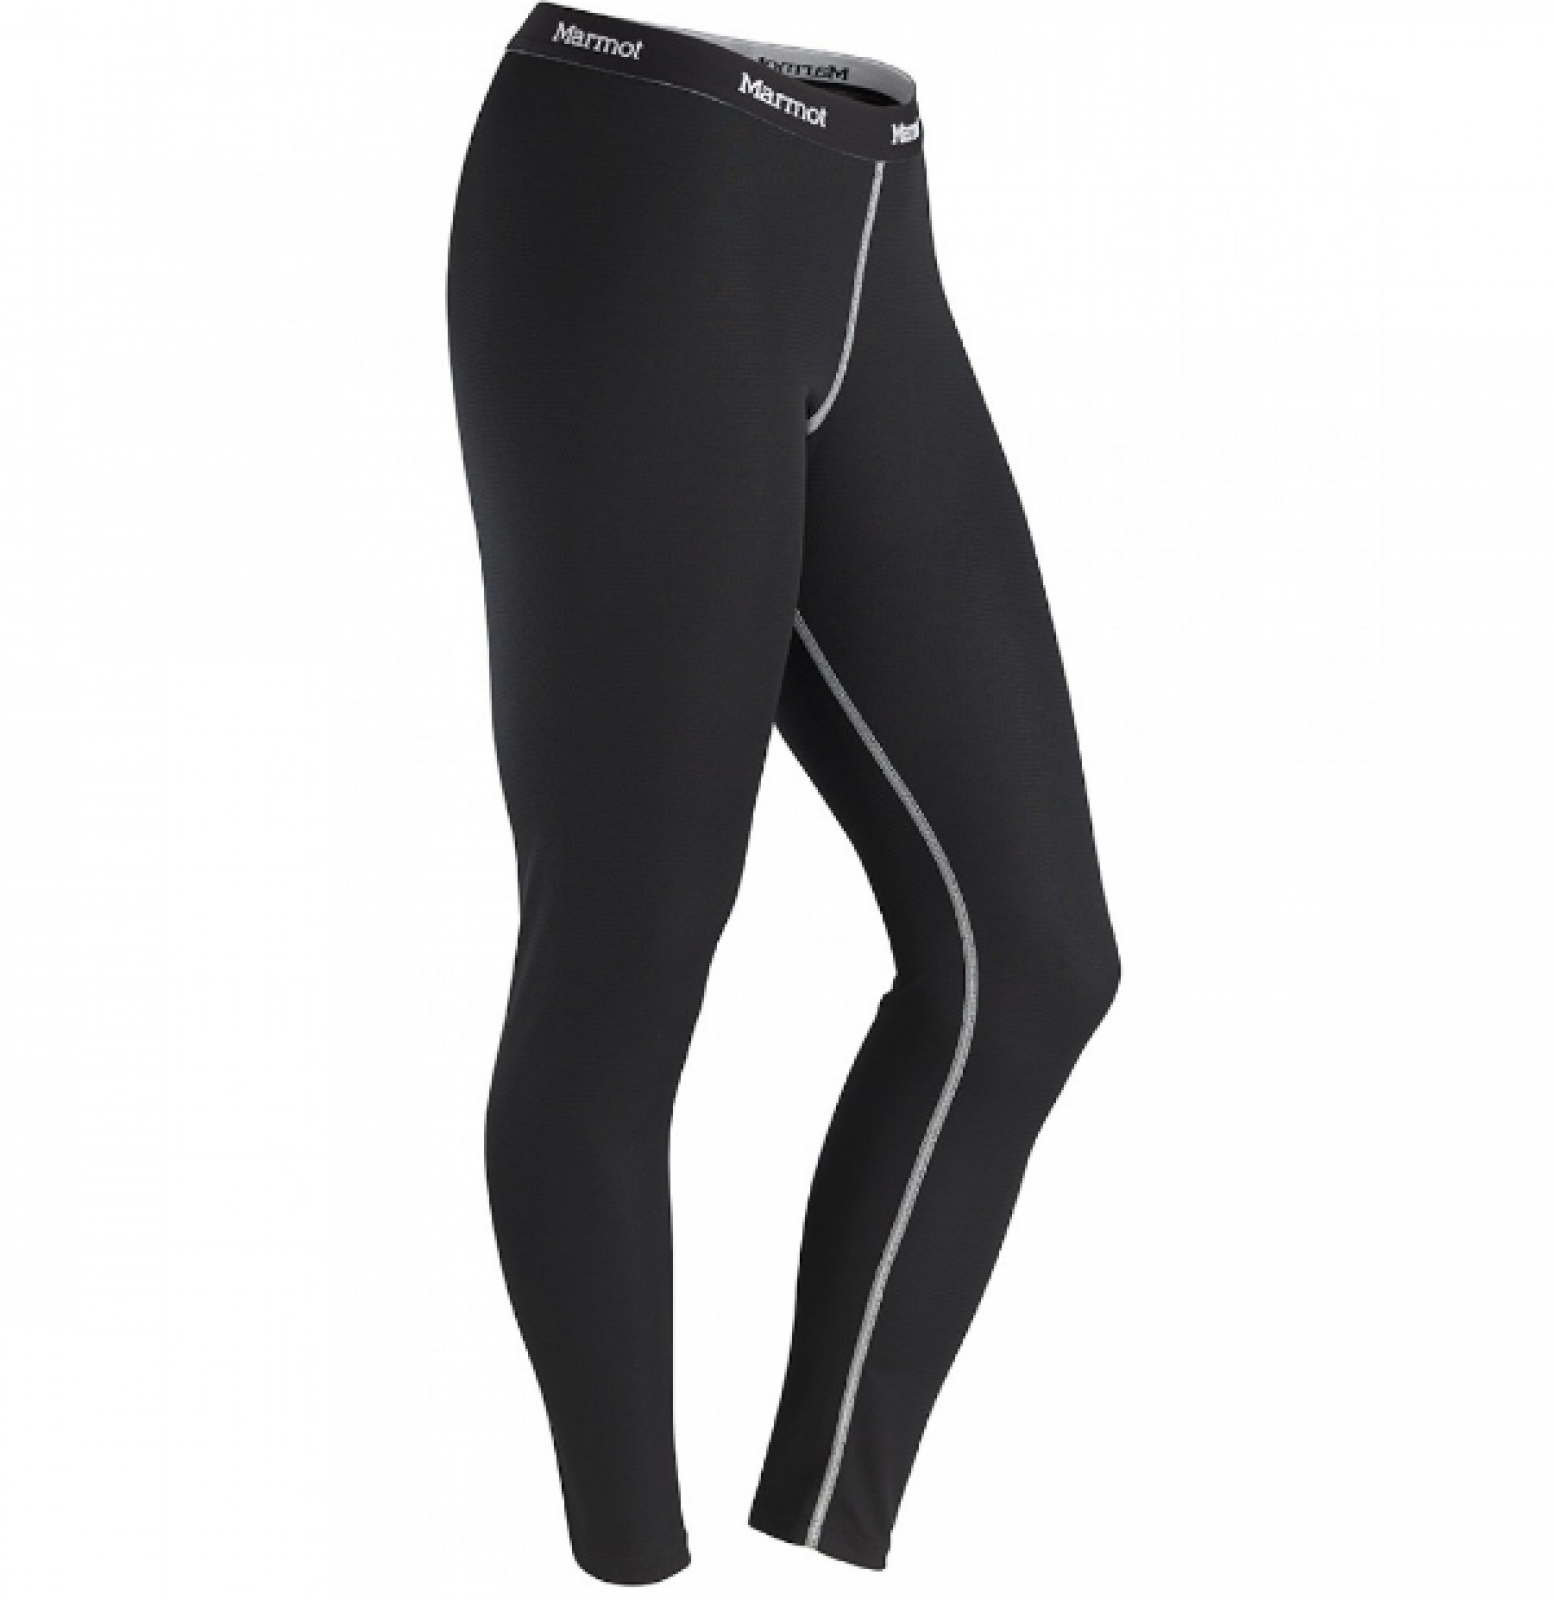 Брюки Marmot Wms ThermalClime Sport Tight жен.